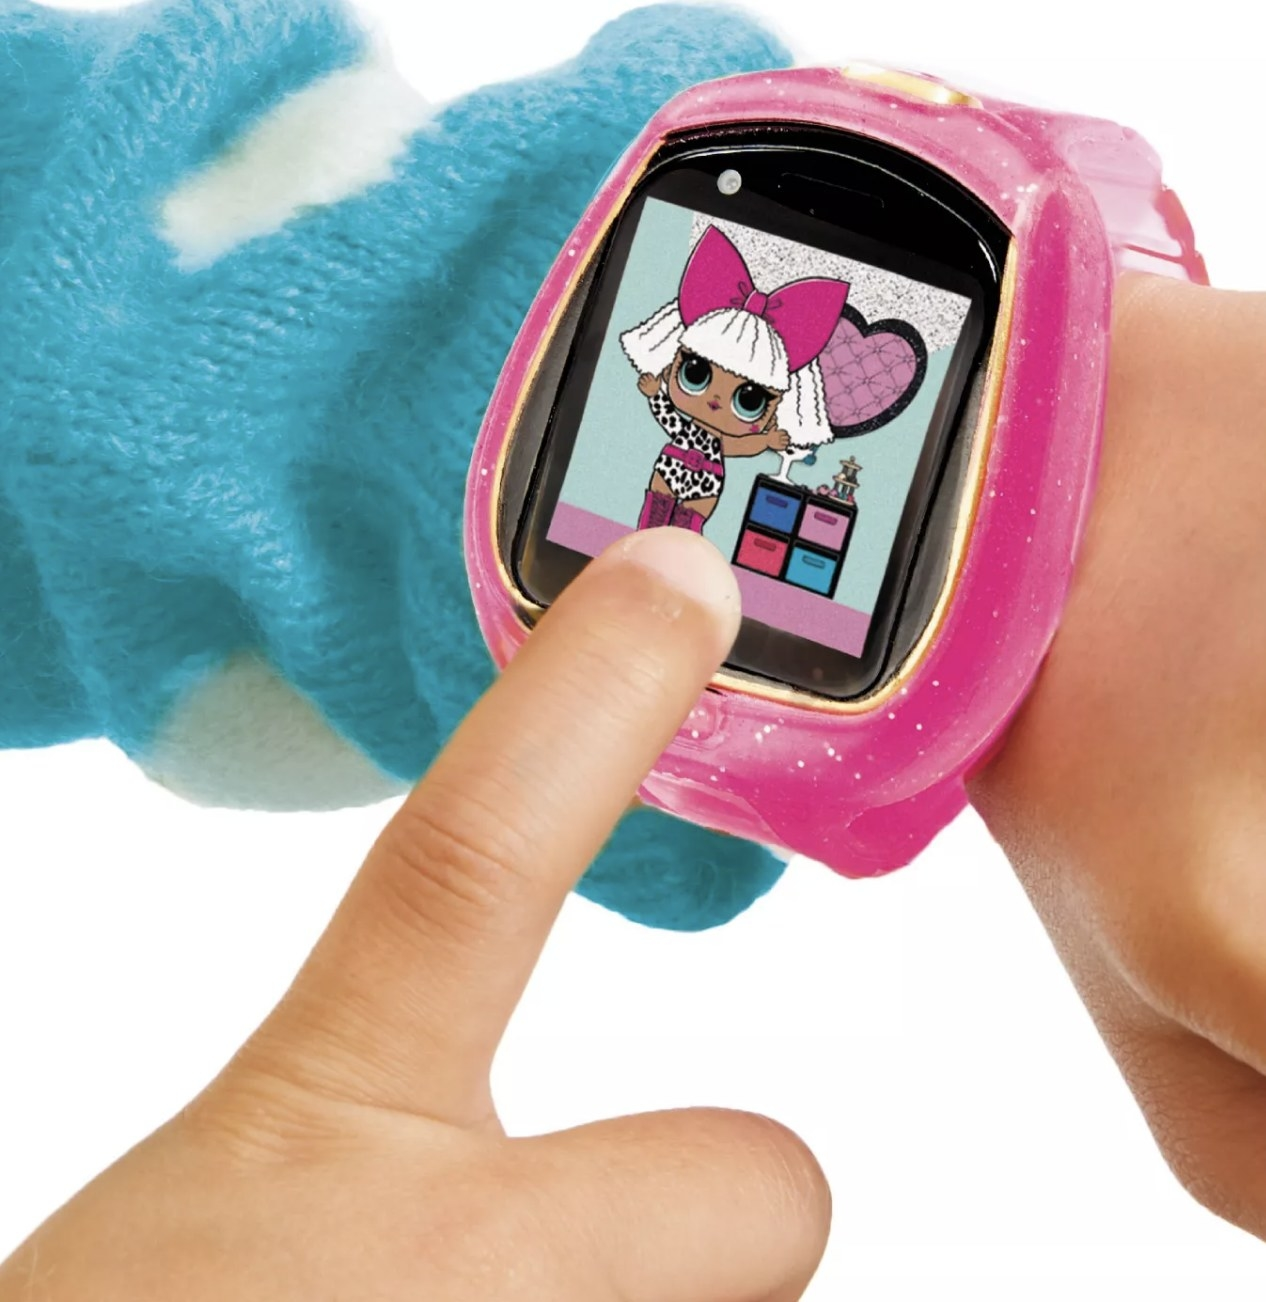 Person is wearing the pink smartwatch